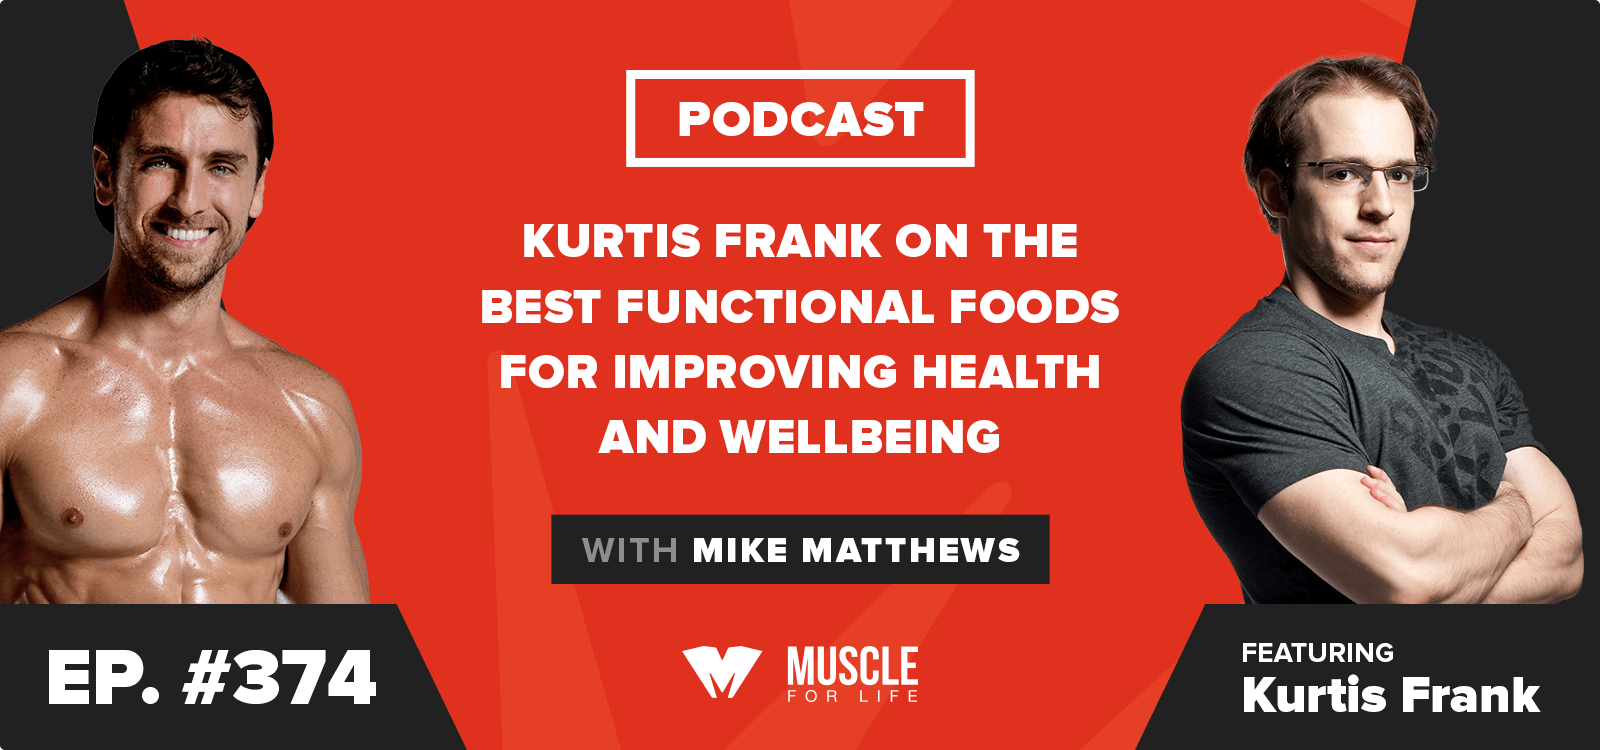 Kurtis Frank on the Best Functional Foods for Improving Health and Wellbeing